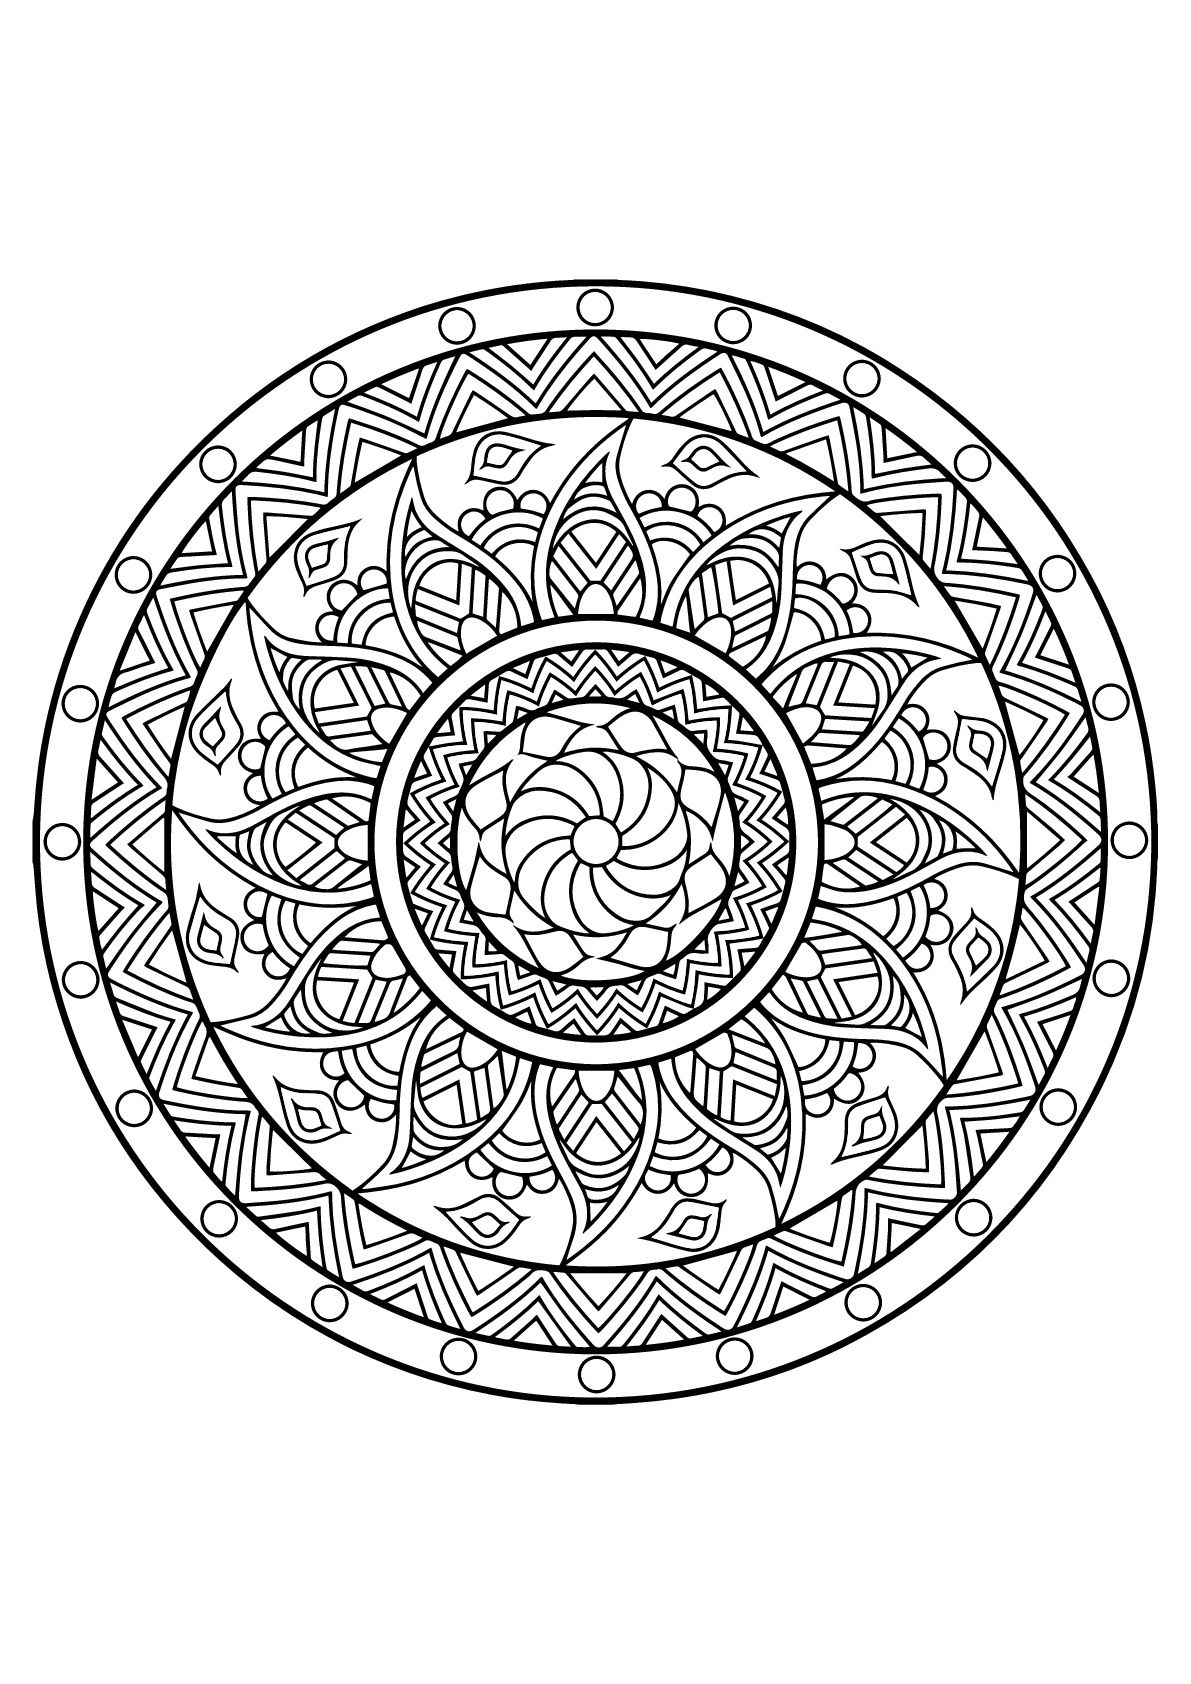 Mandala From Free Coloring Book For Adults From The Gallery